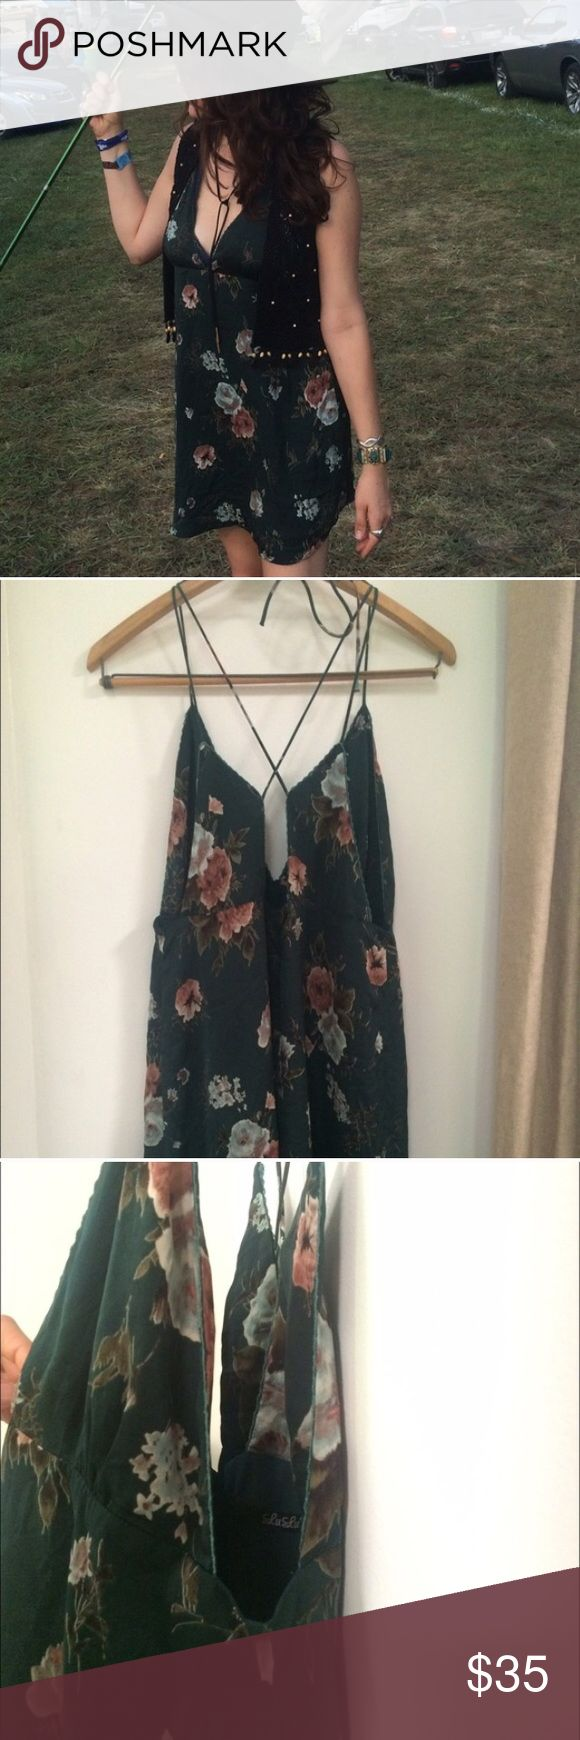 Green Festival Dress This green floral slip dress is so pretty! Fully lined. Has zipper in the back and ties around neck. Can be dressed for any occasion with heels and a jacket, or sandals and a cute bralette! Lulu's Dresses